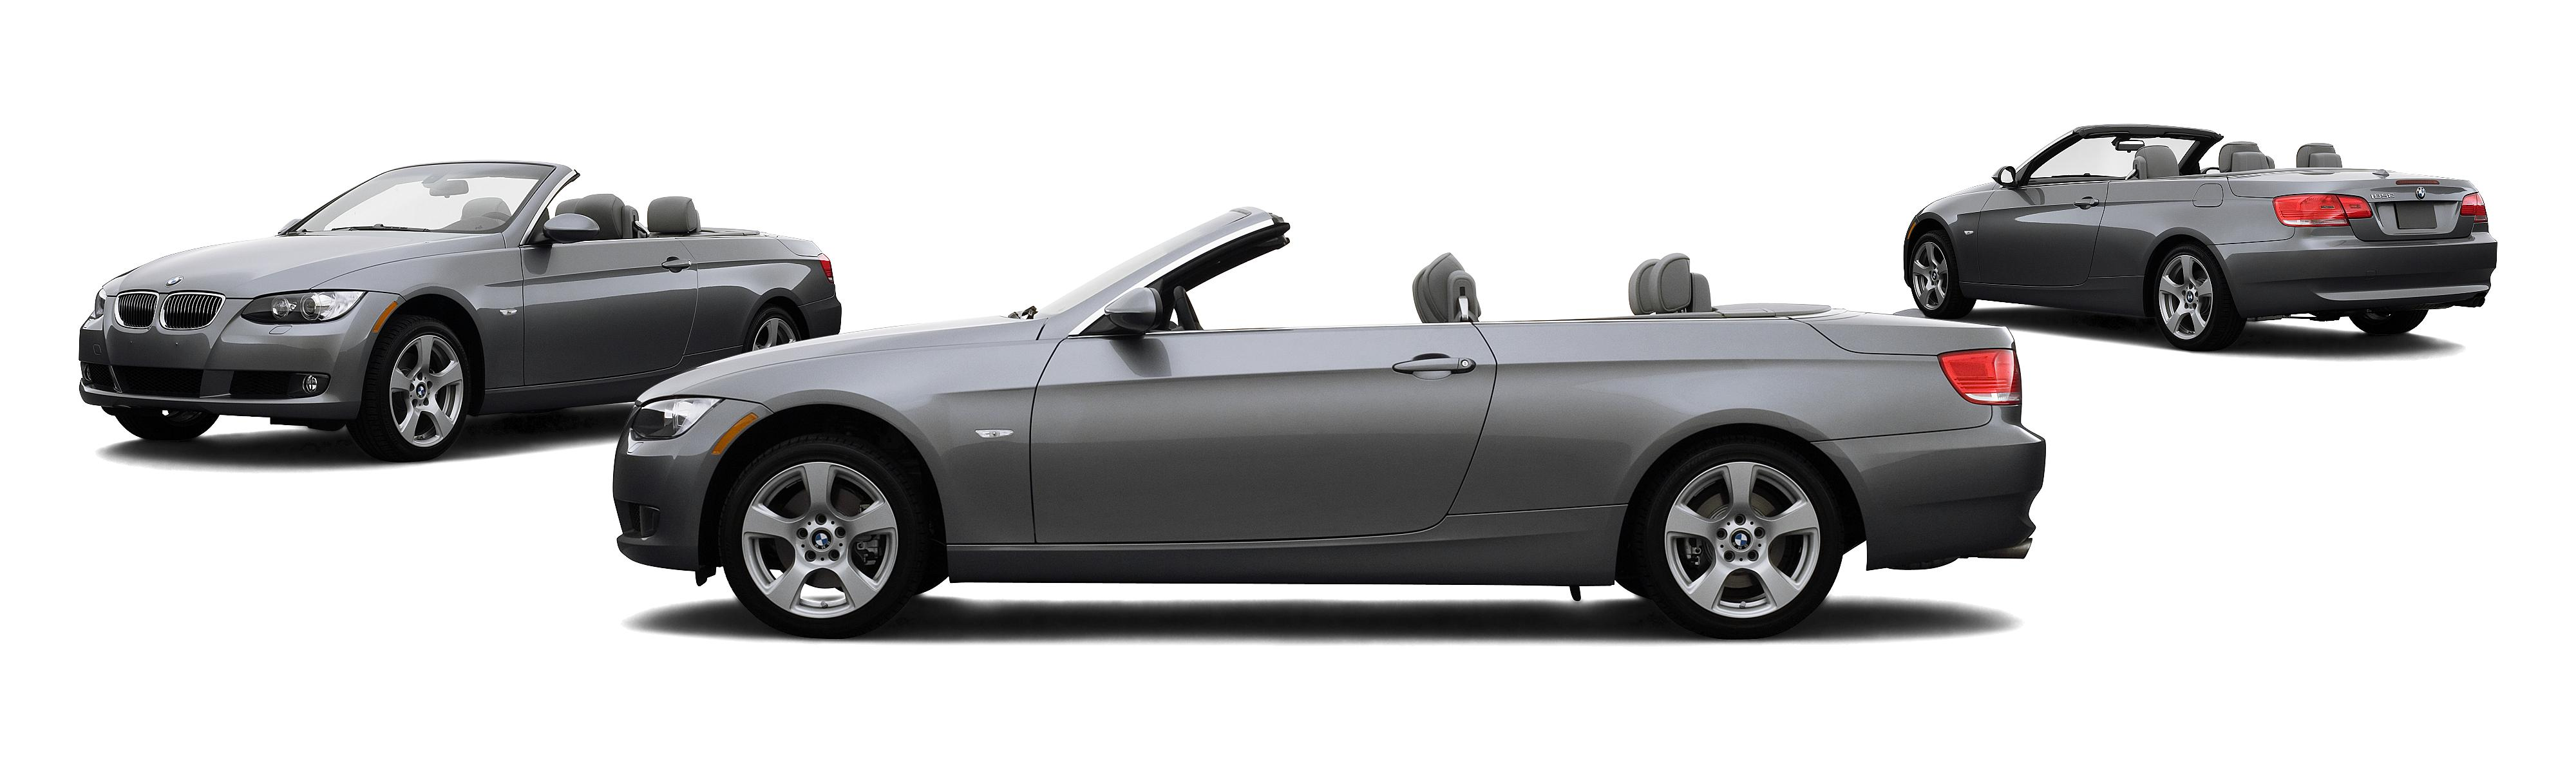 Bmw 335i 2007 Convertible Owners Manual | 2019 Ebook Library